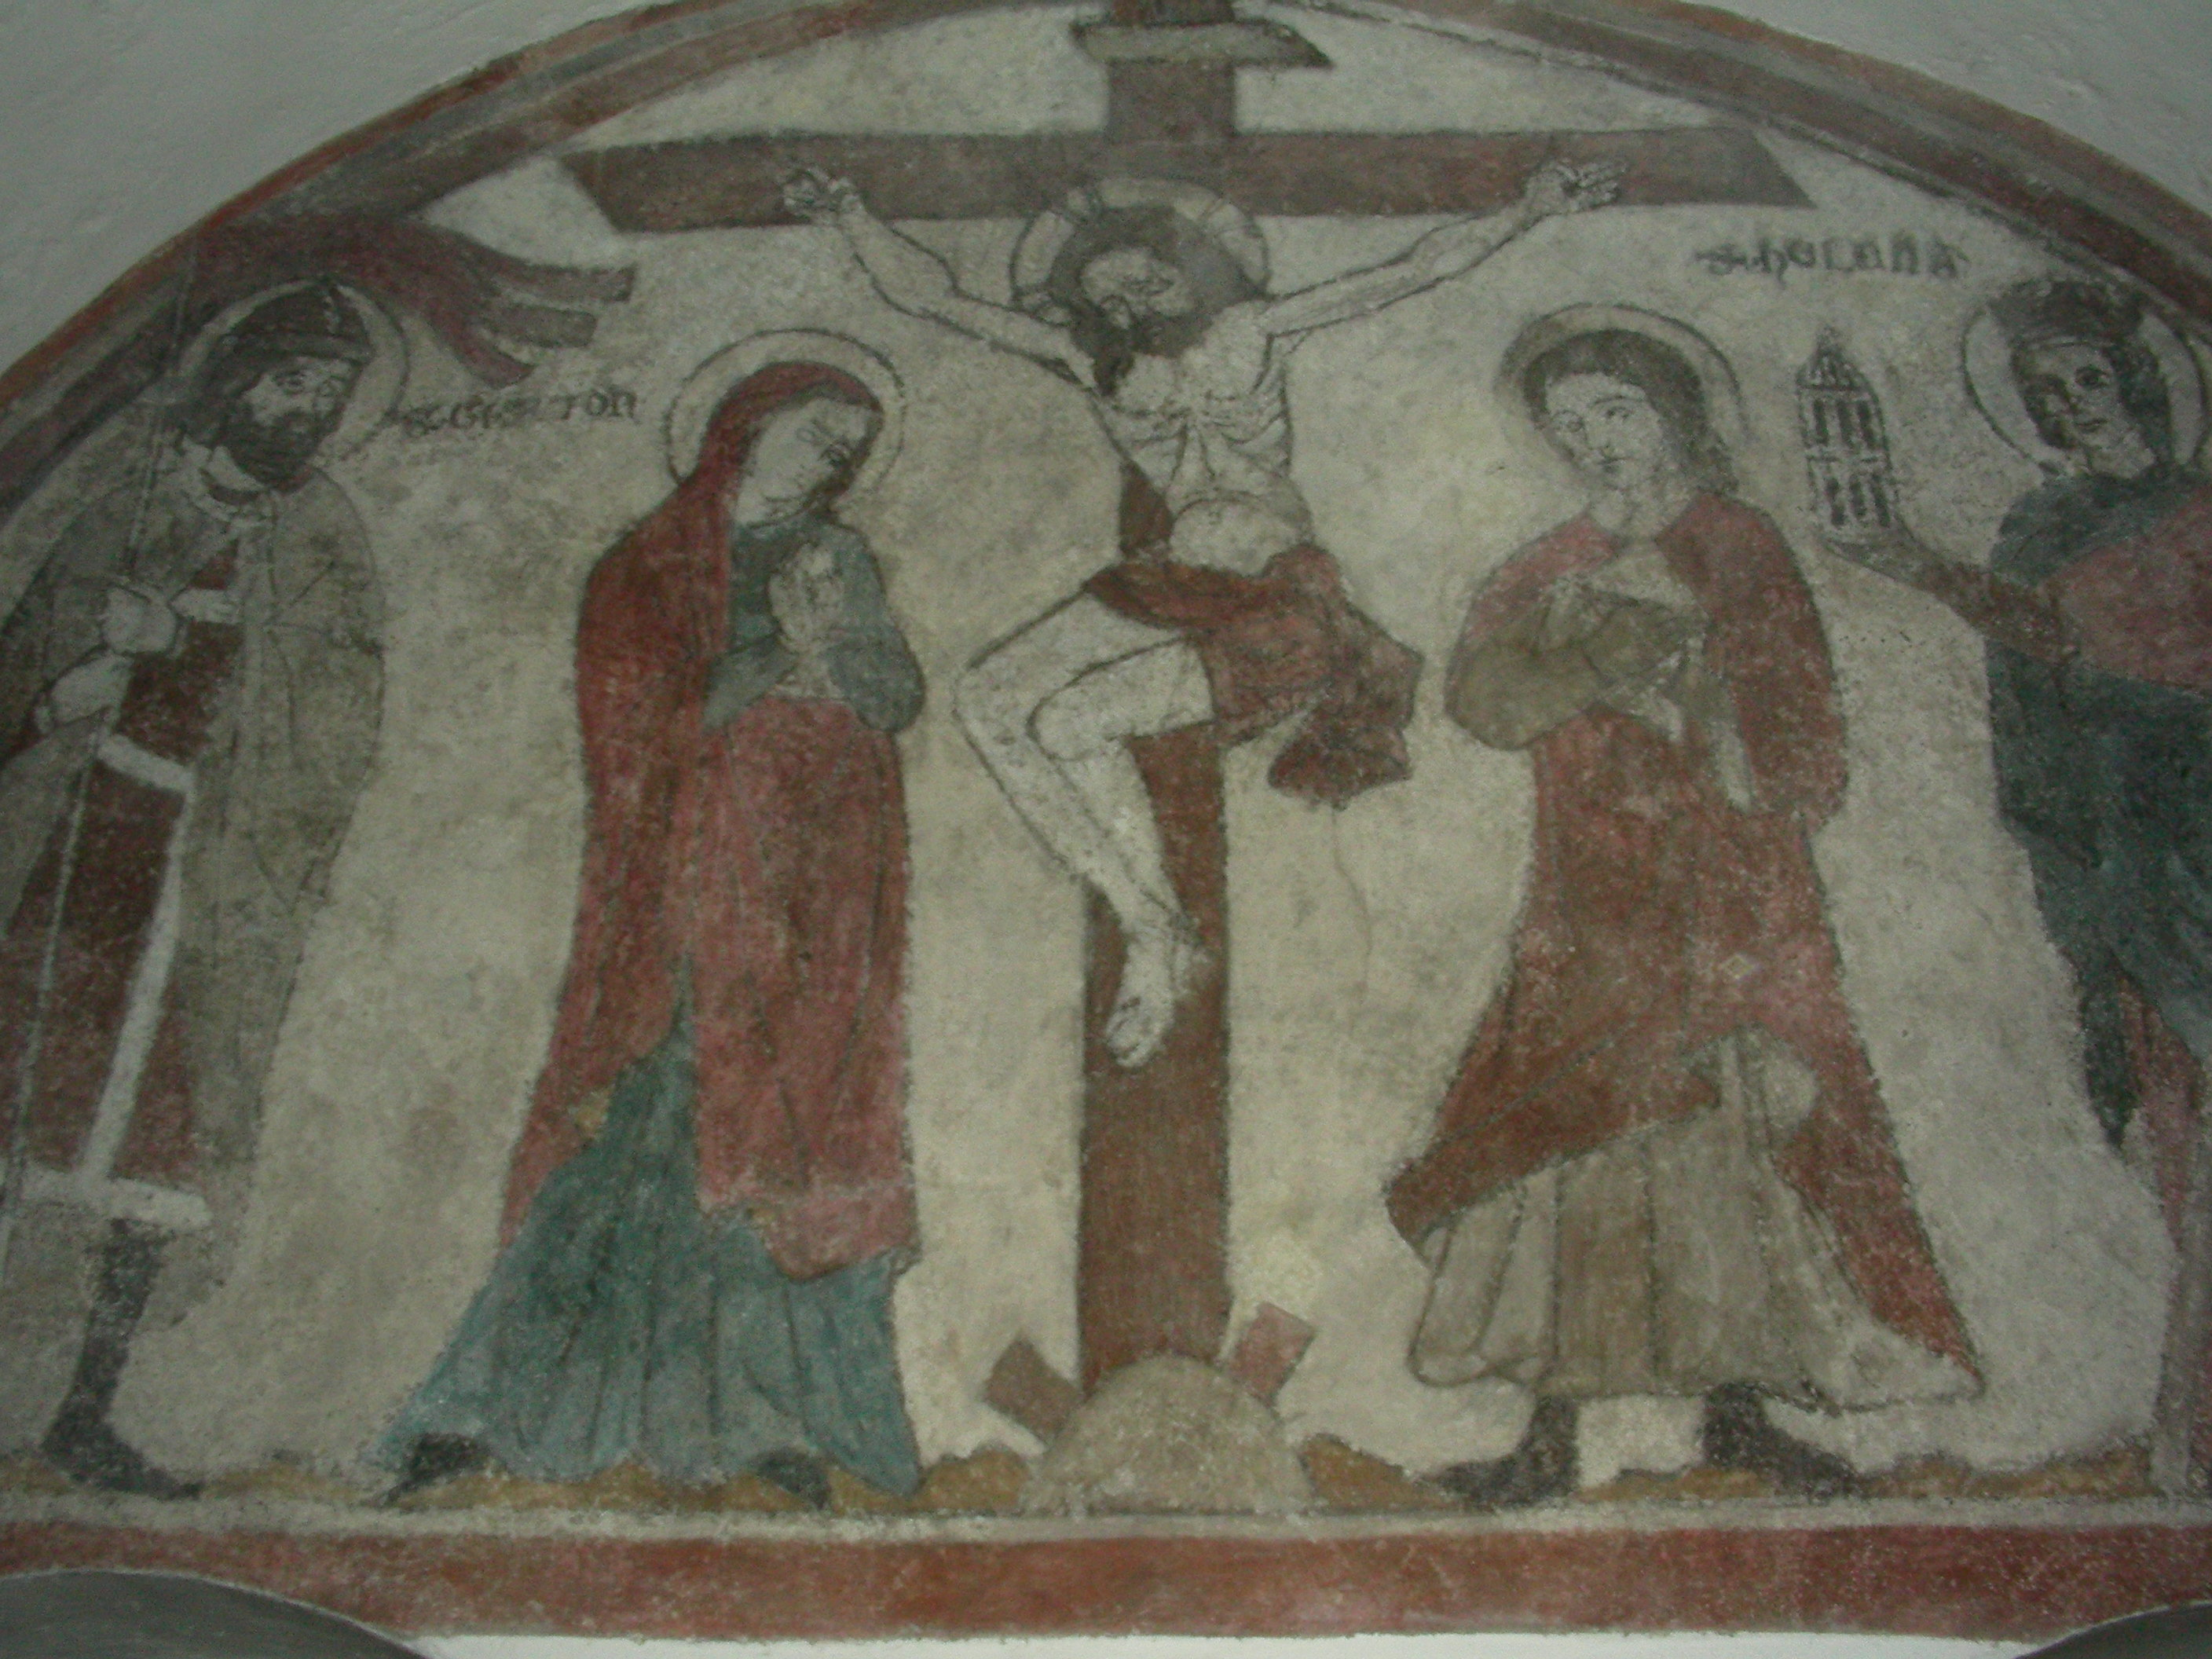 https://upload.wikimedia.org/wikipedia/commons/9/96/St.Gereon_Kreuzigungsdarstellung_Krypta.JPG